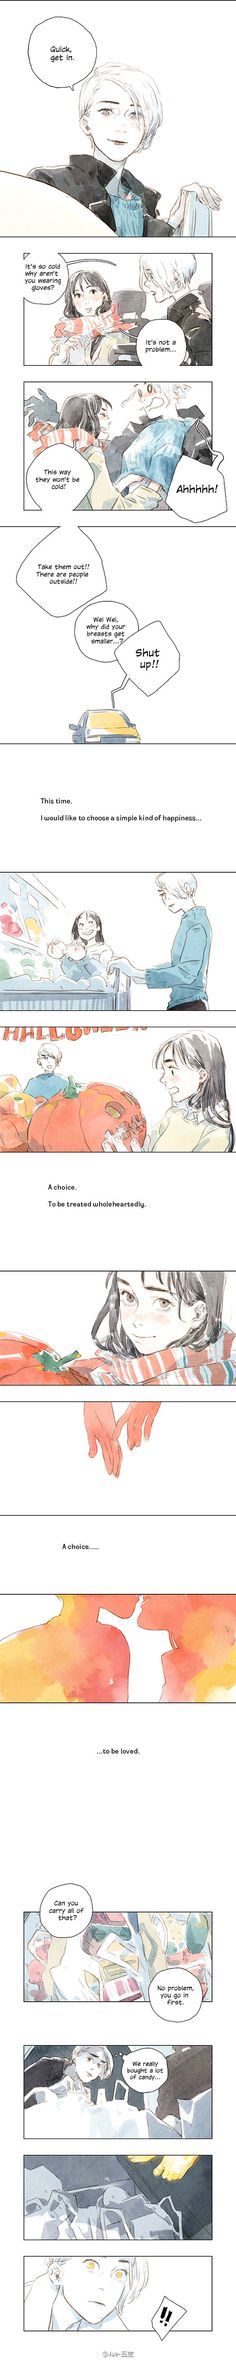 Beloved (Jaeliu) ch.008 - Stream 1 Edition 1 Page All - MangaPark - Read Online For Free